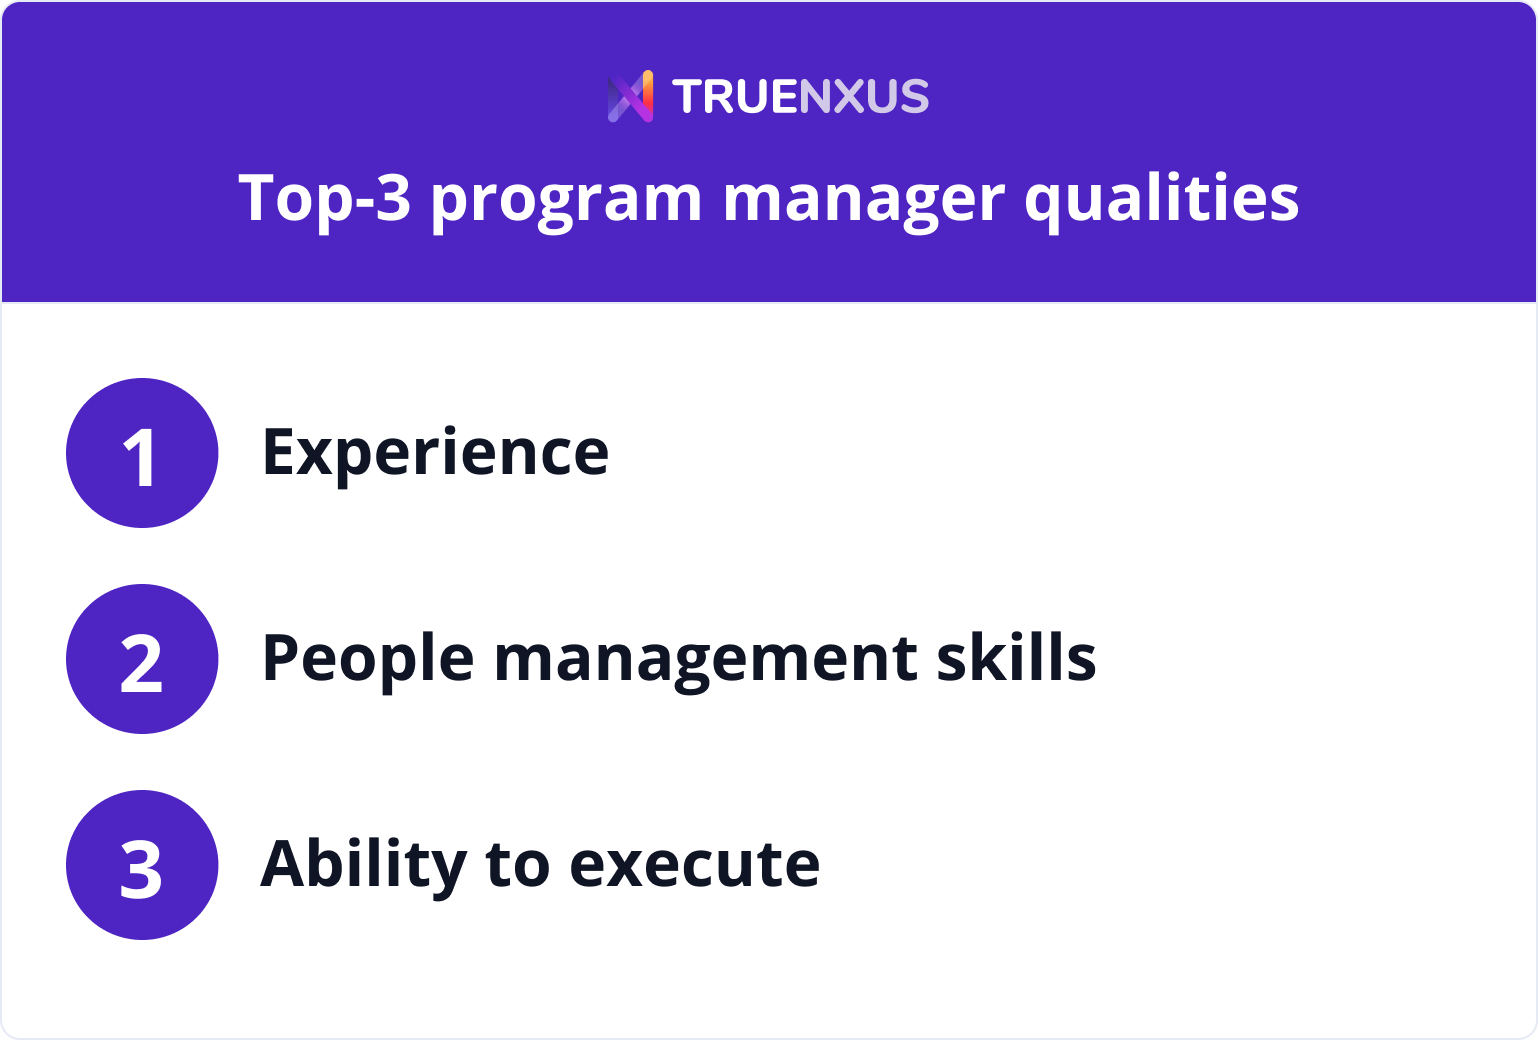 Top-3 program manager qualities infographic